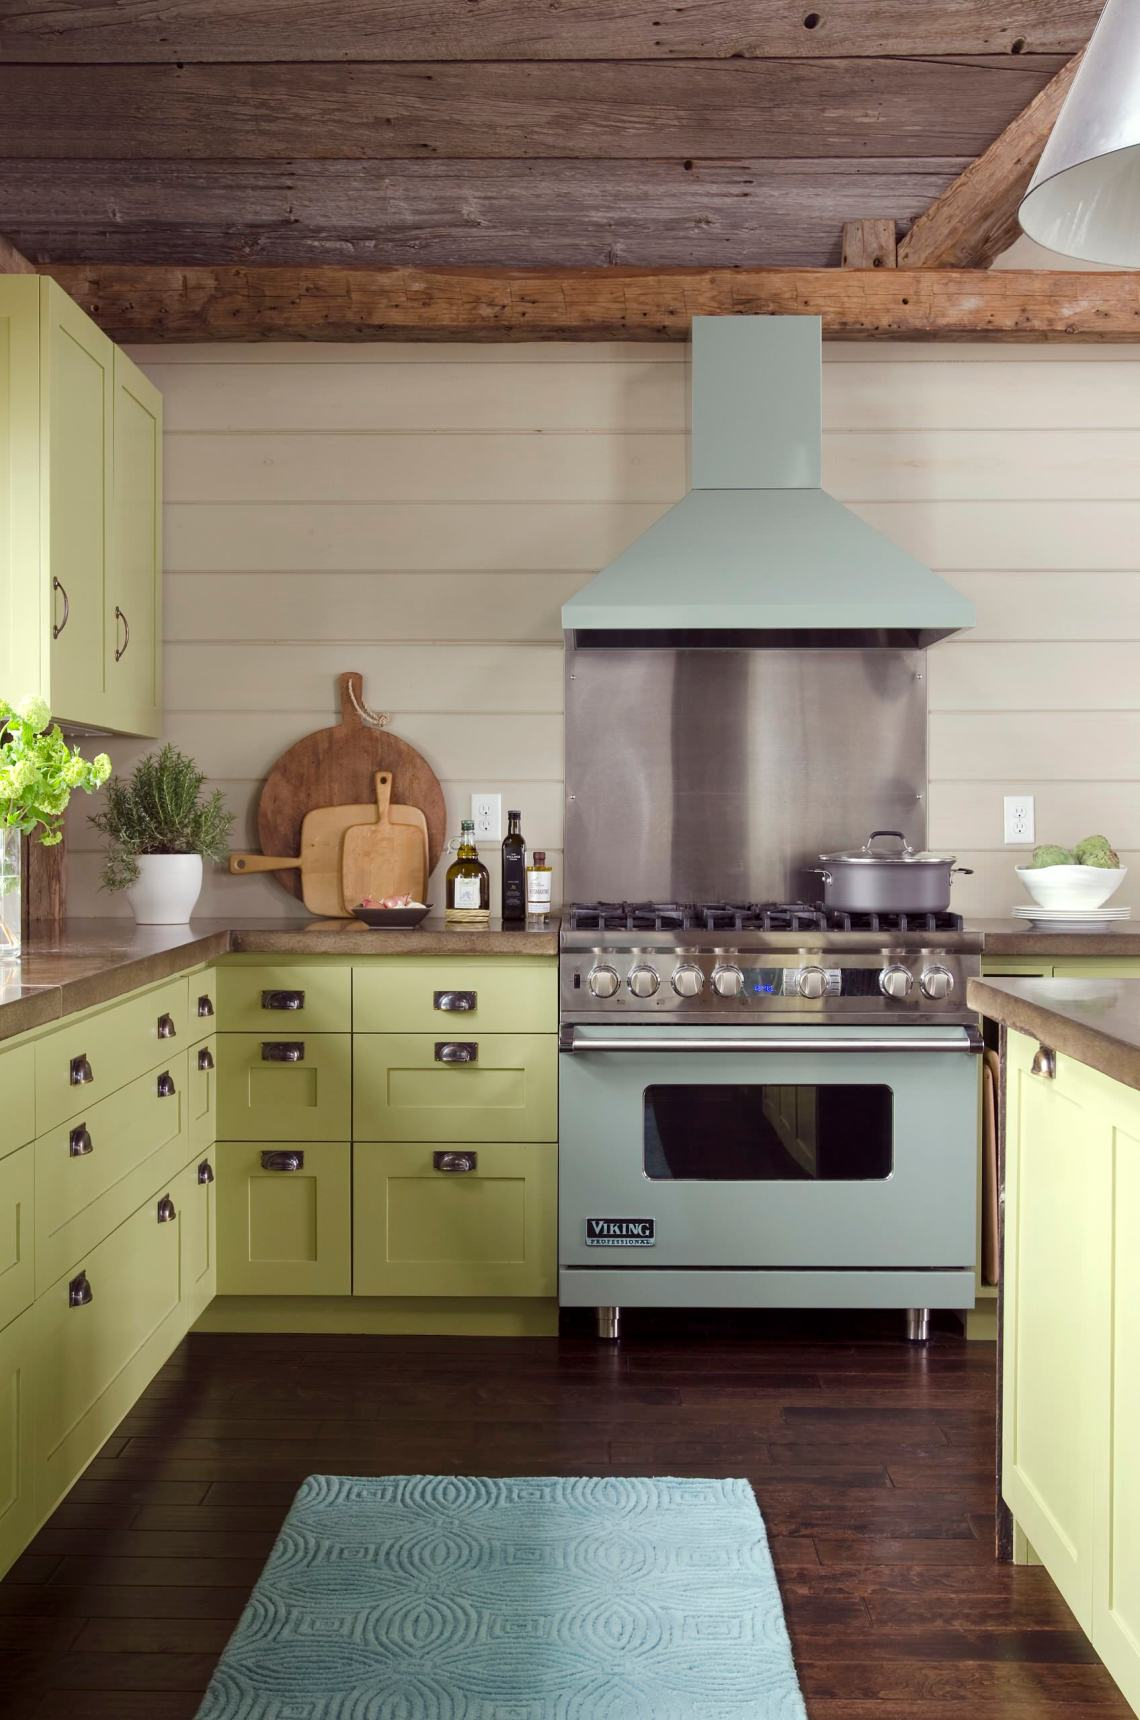 Gas Ranges And Electric Ranges Kitchen Ideas Photos Houzz